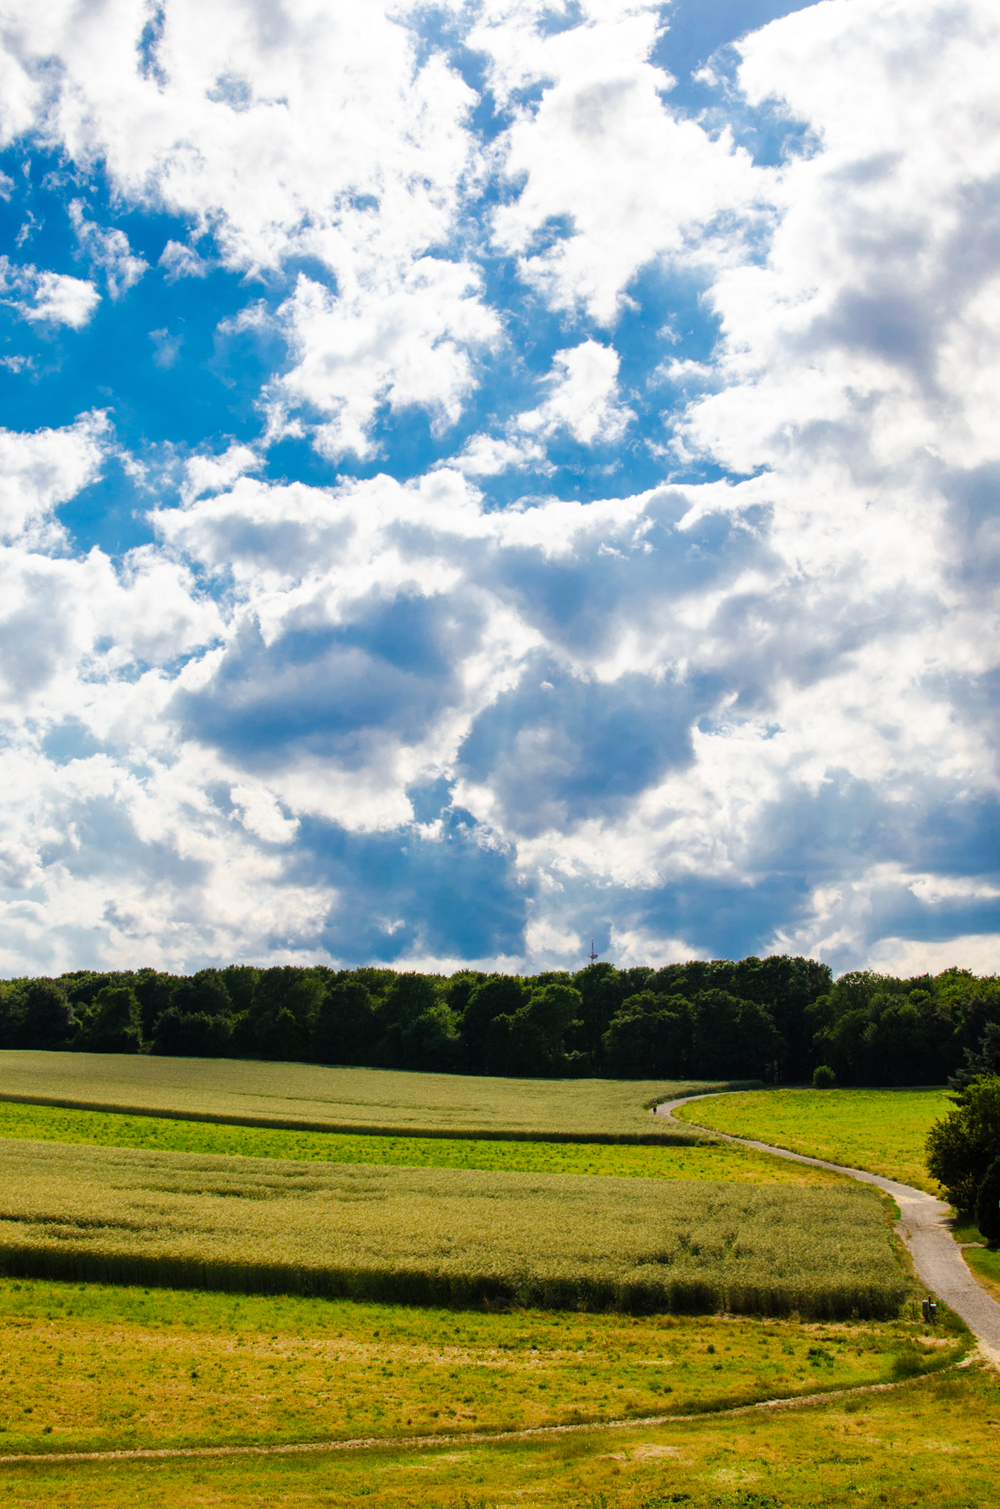 Project 365: #165 - Summer afternoon